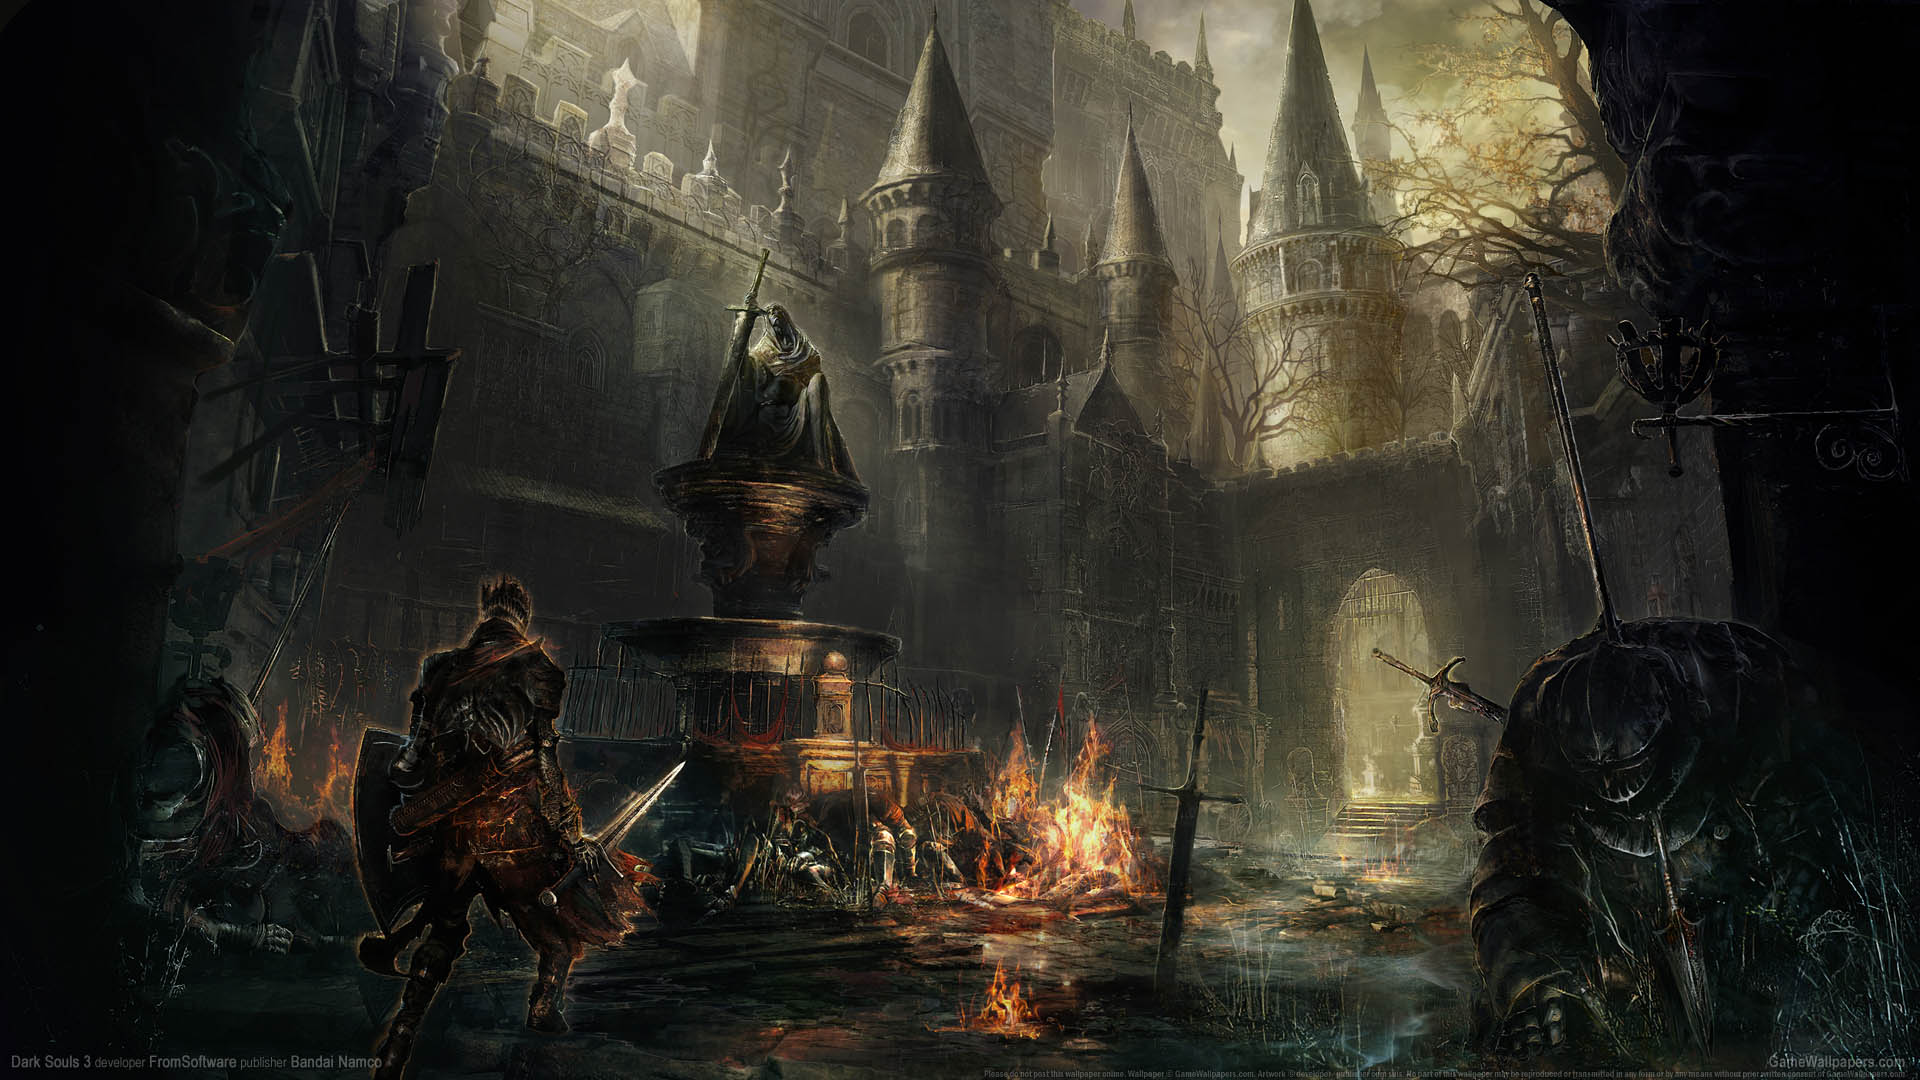 Dark Souls 3 Wallpaper 01 1920x1080